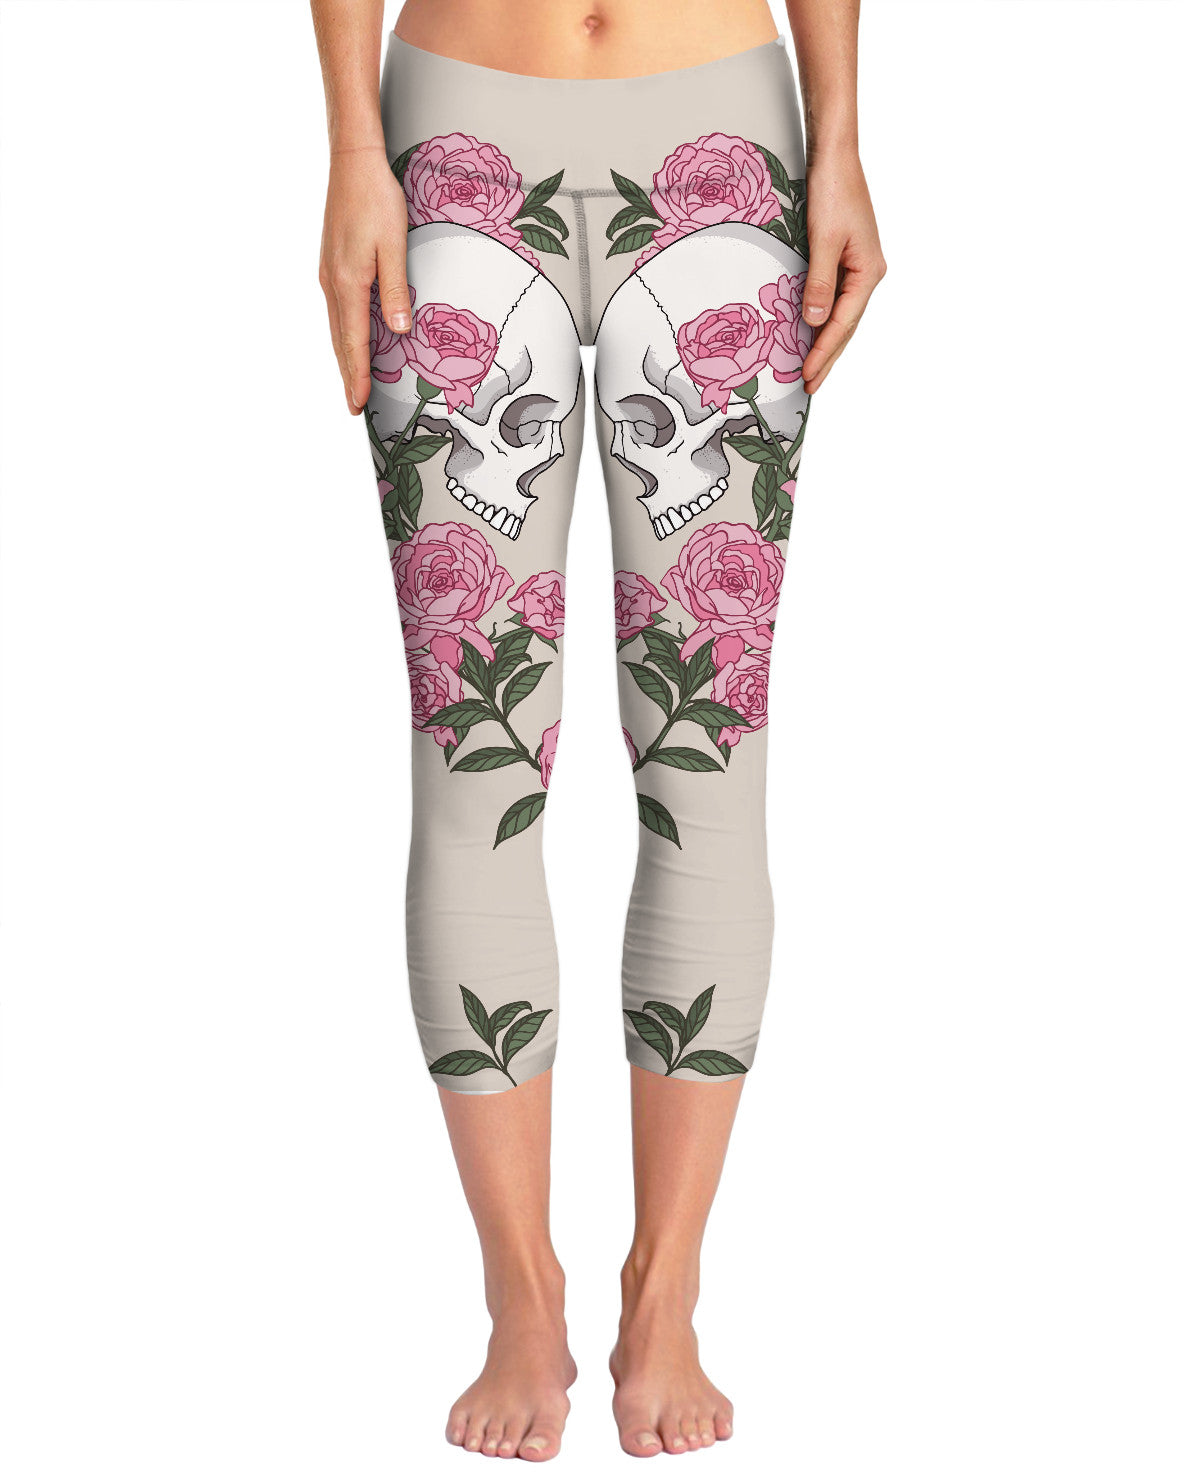 Skulls and Roses Yoga Pants